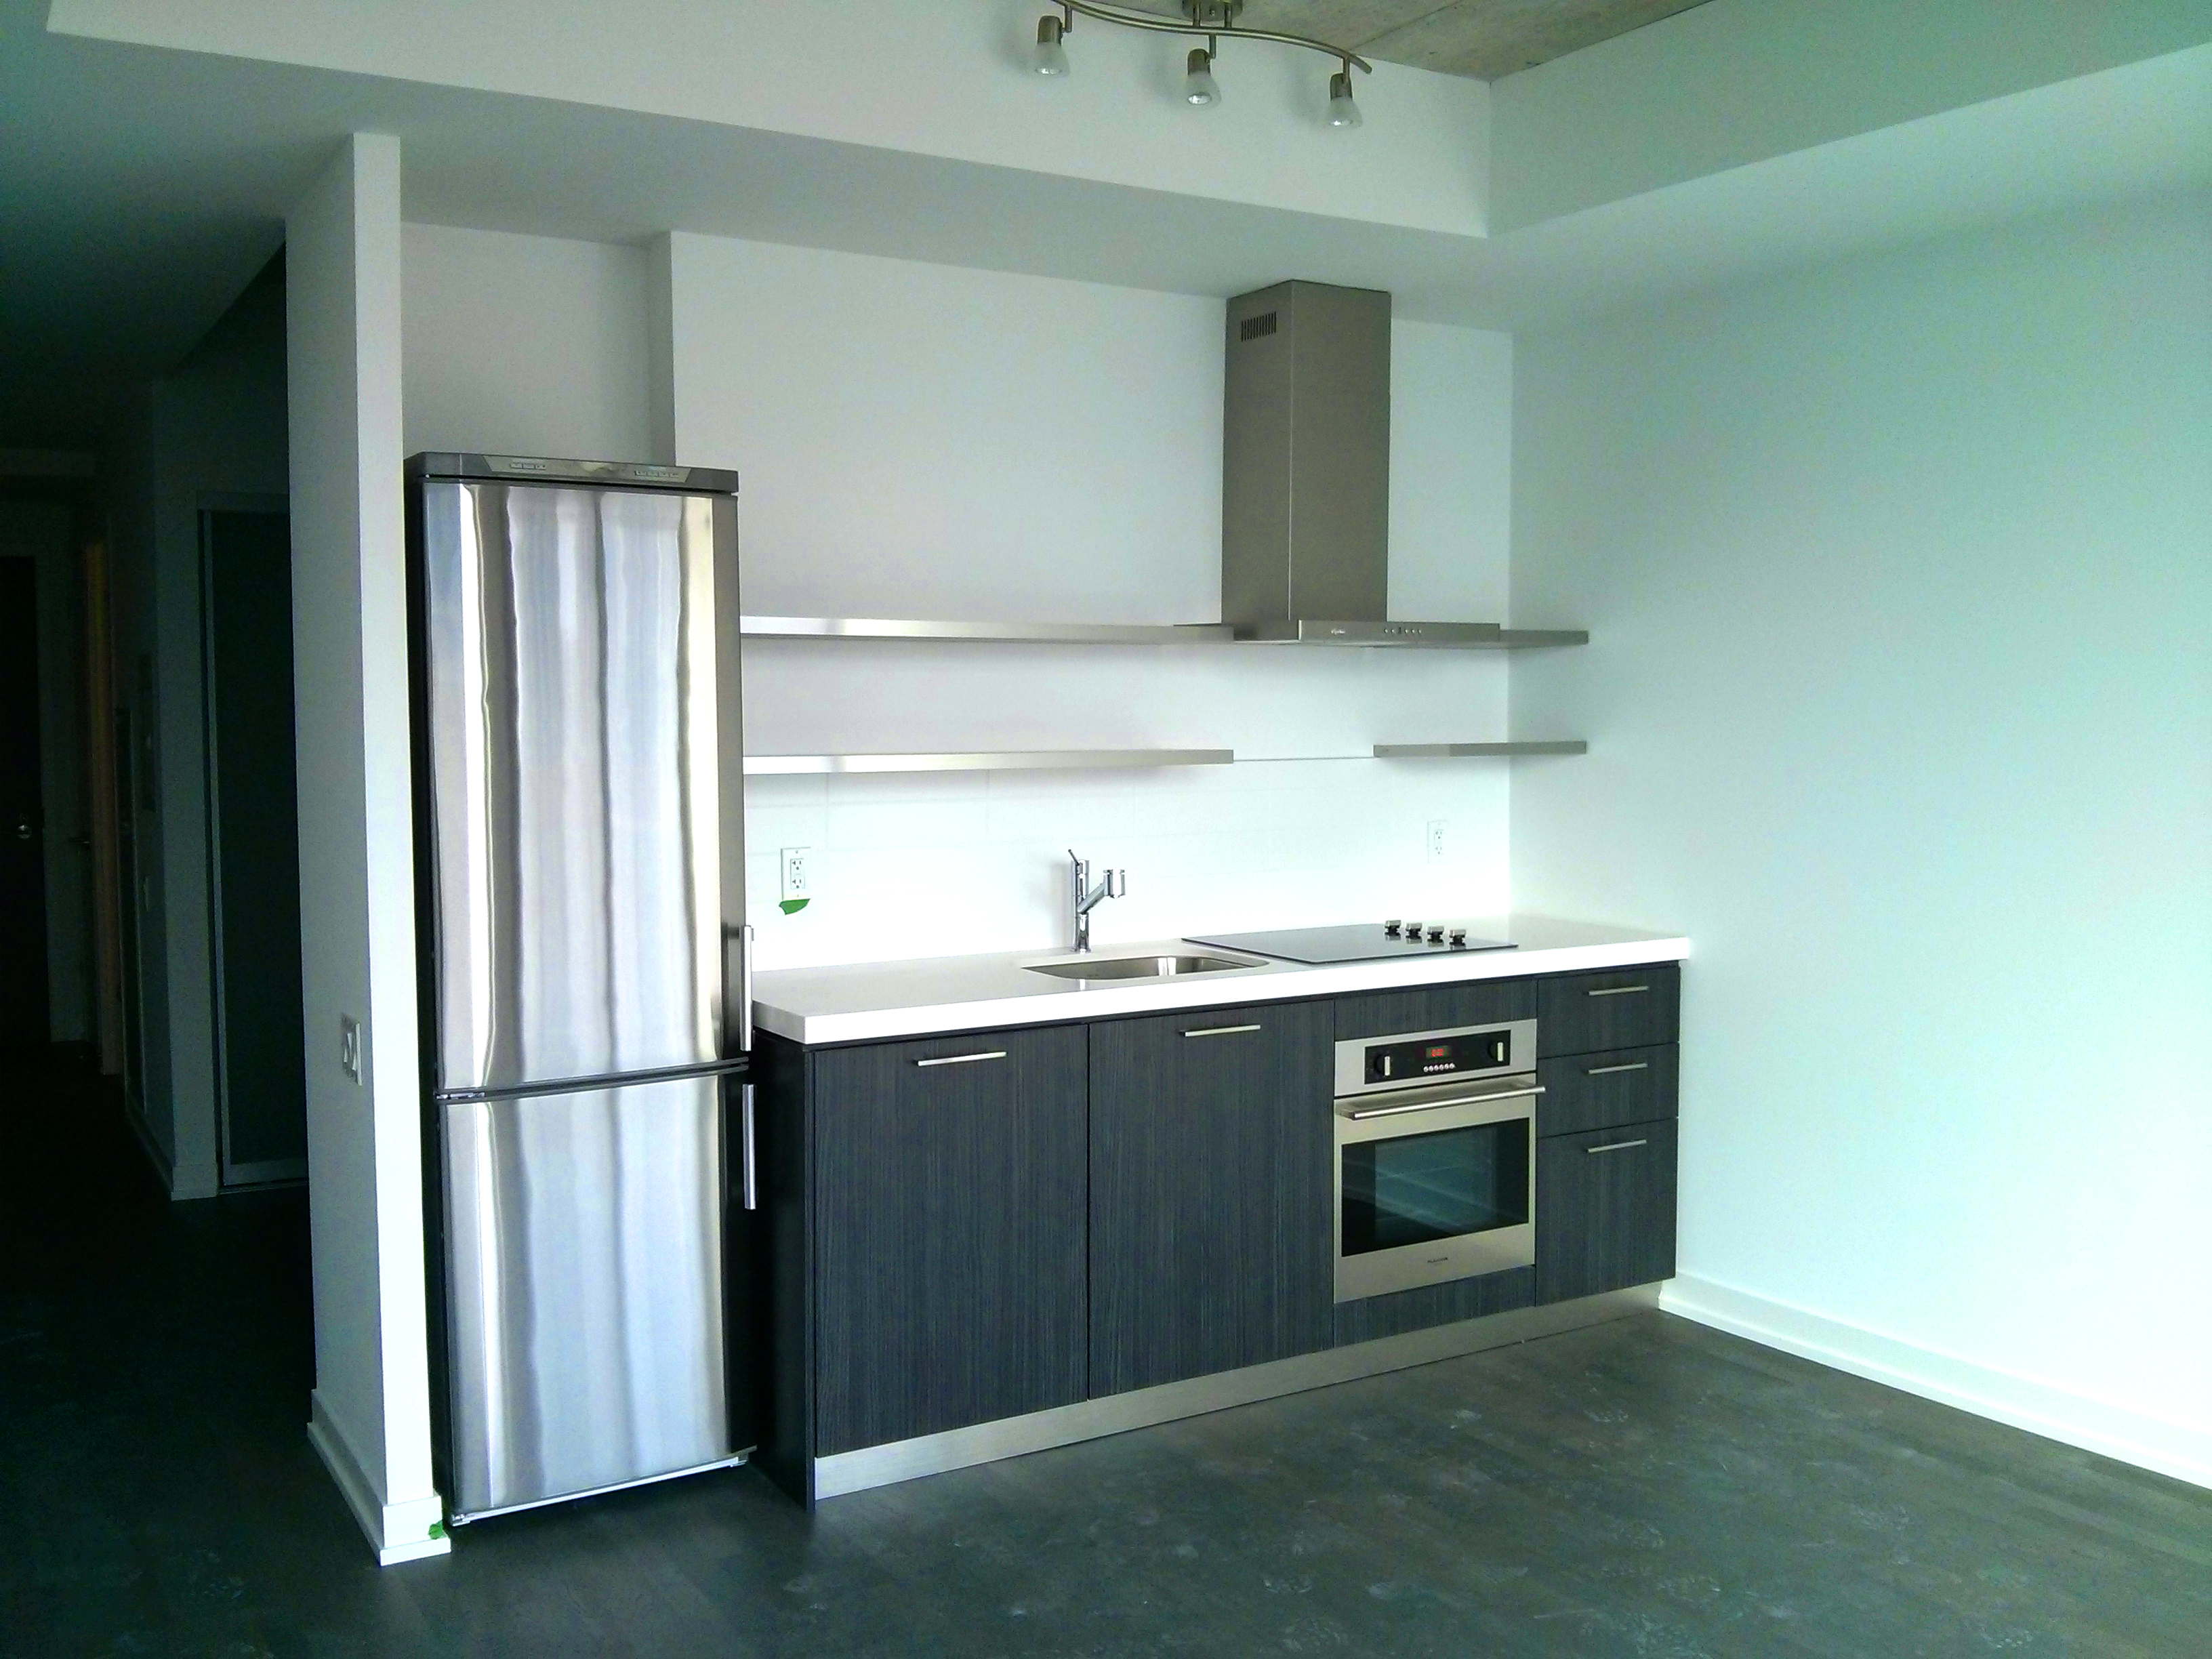 560 KING WEST - STUDIO 530 SQ FT - CONTACT YOSSI KAPLAN